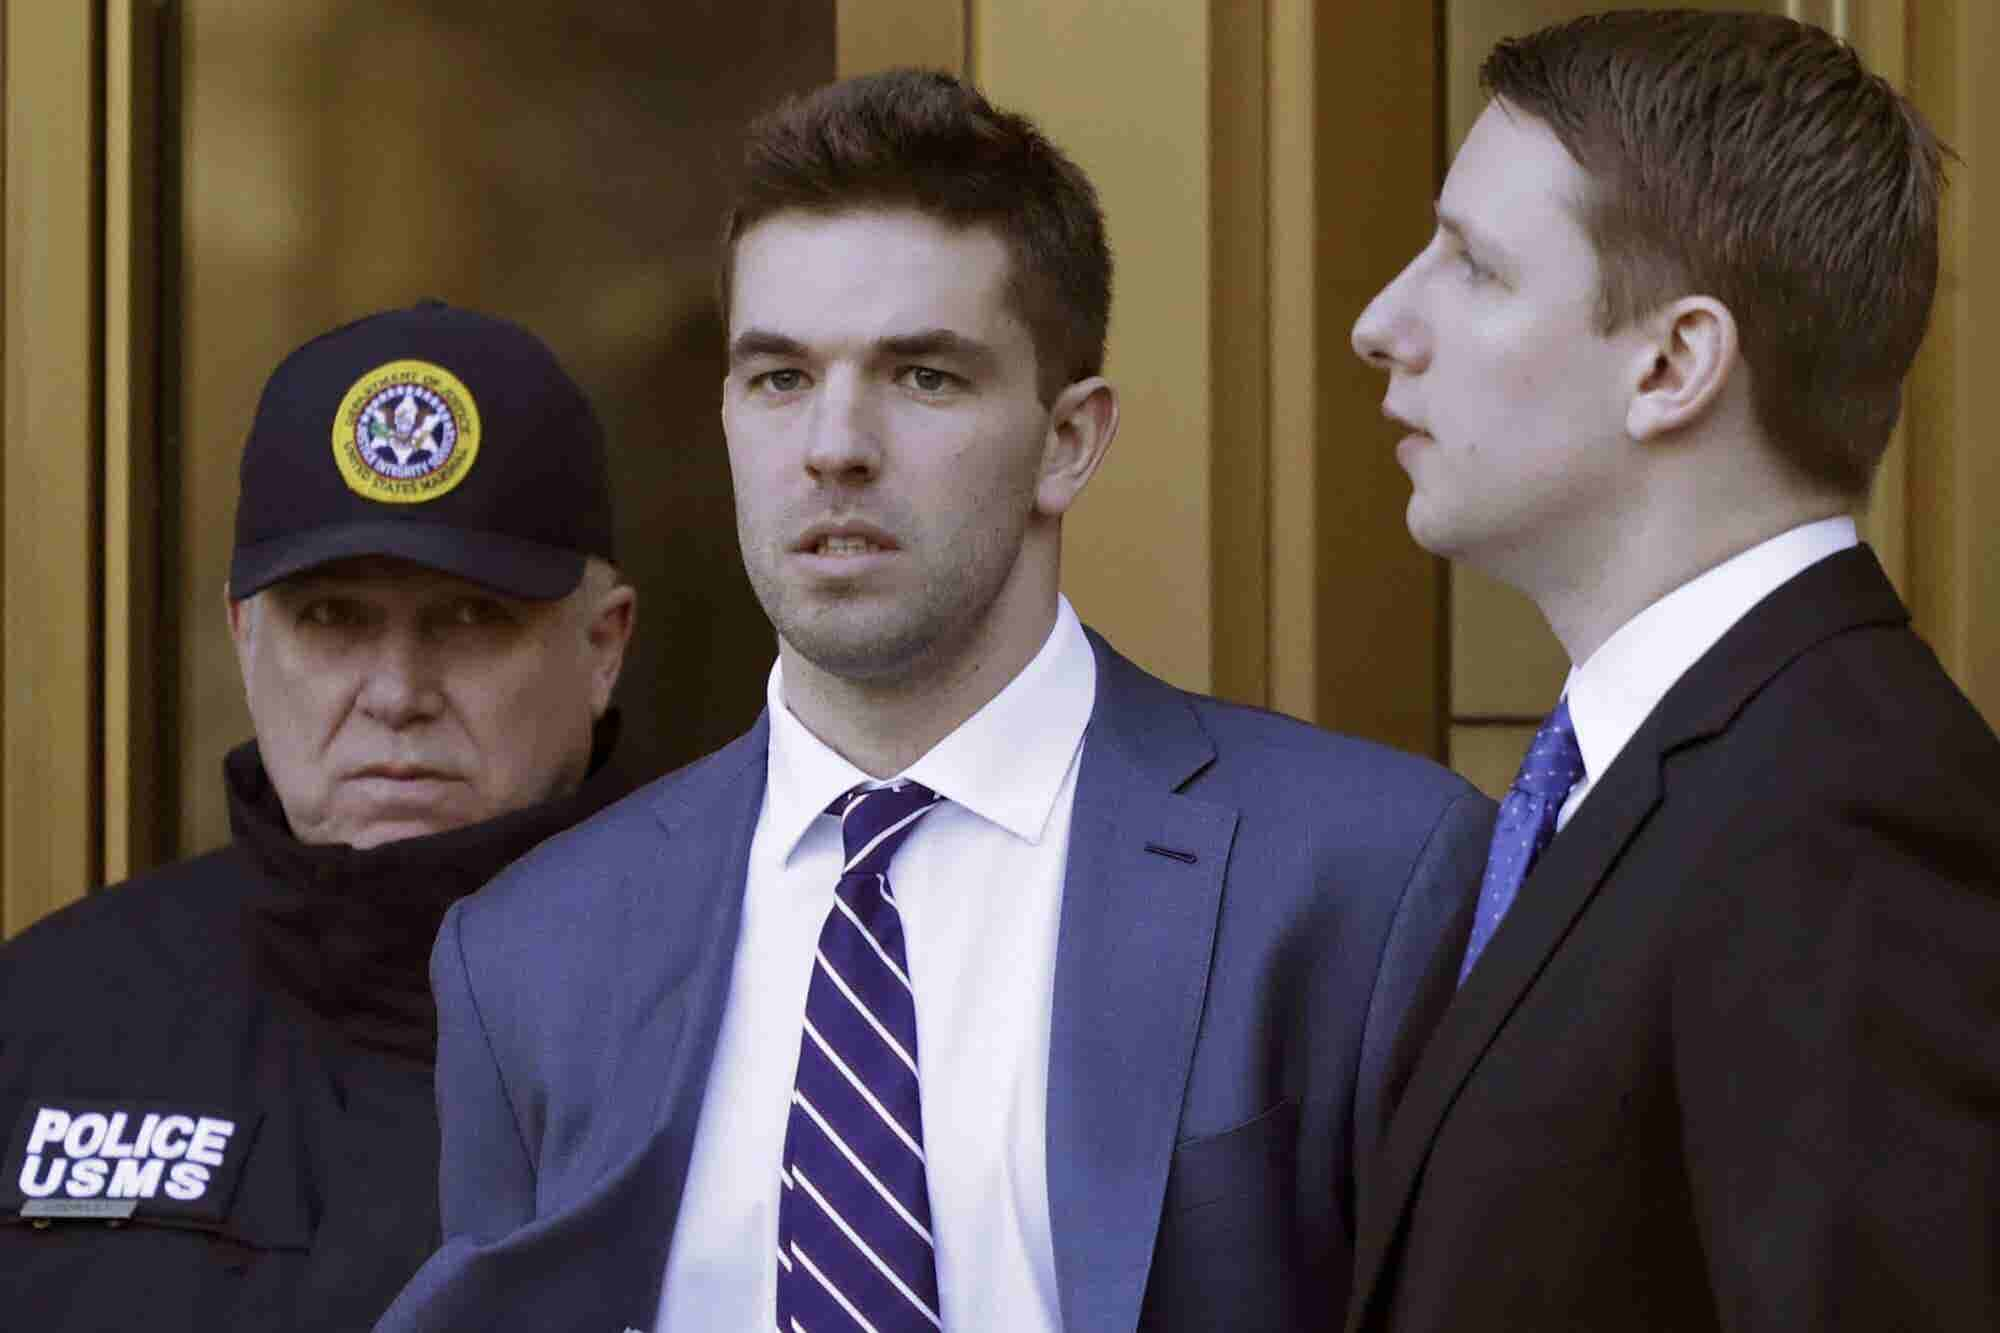 Creator of Doomed Fyre Festival Gets 6-Year Prison Sentence